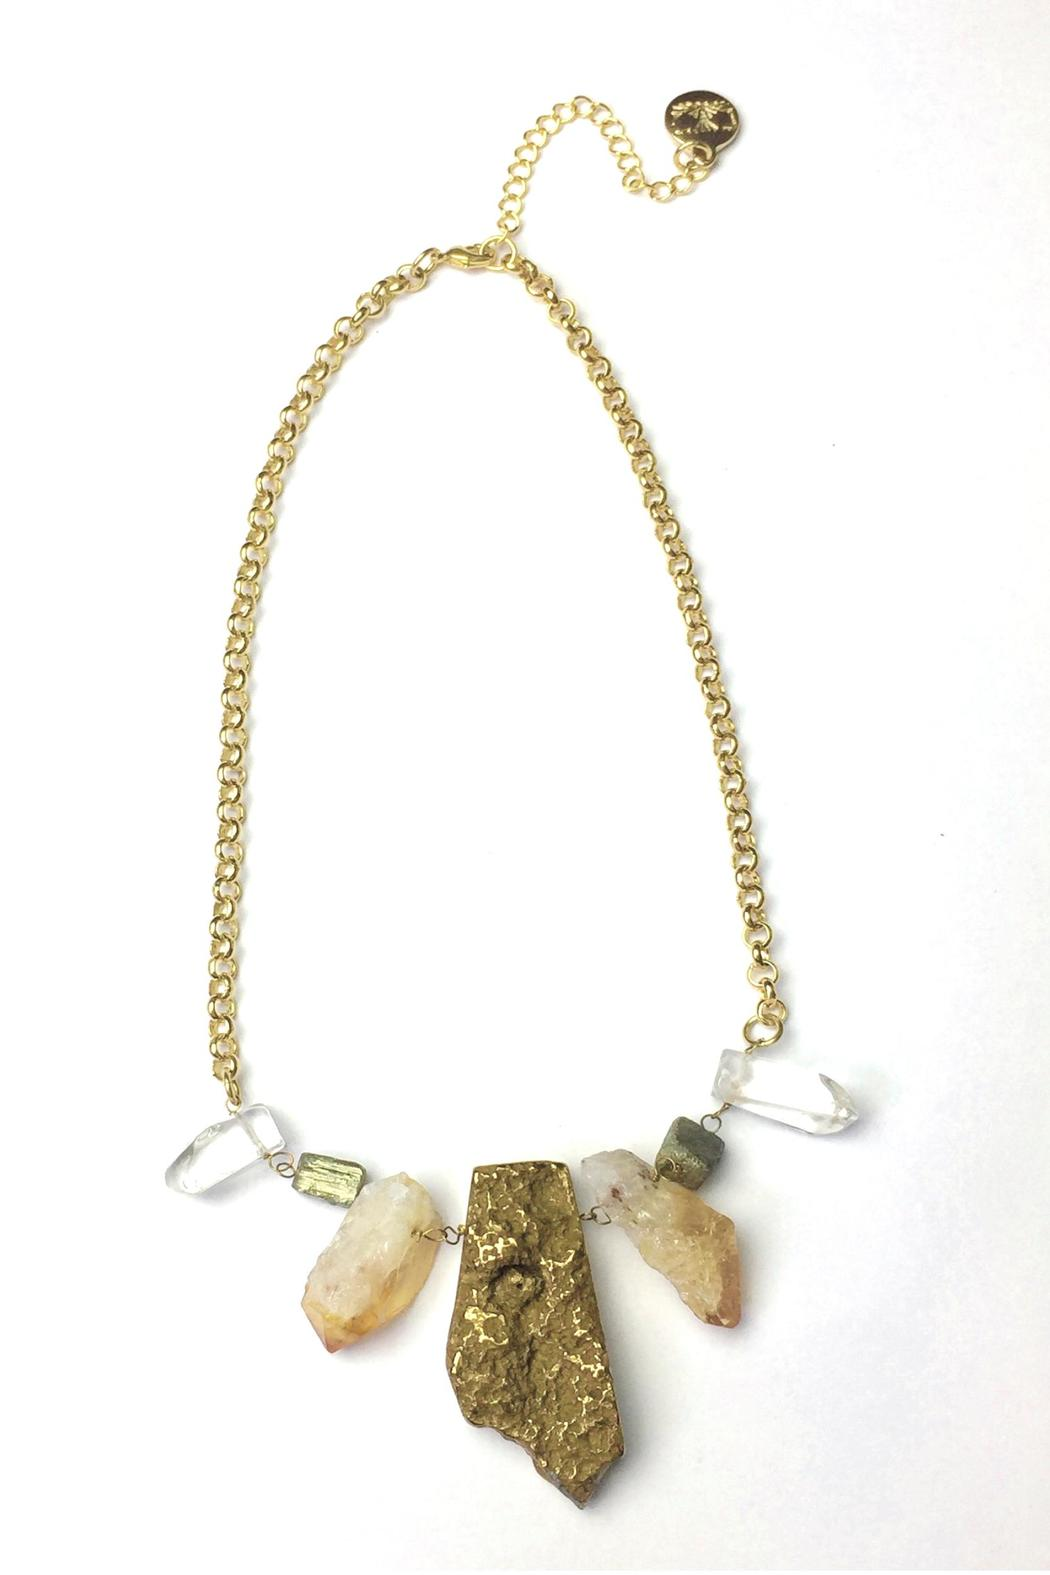 Baggis Accesorios Semiprecious Stone Necklace from ...